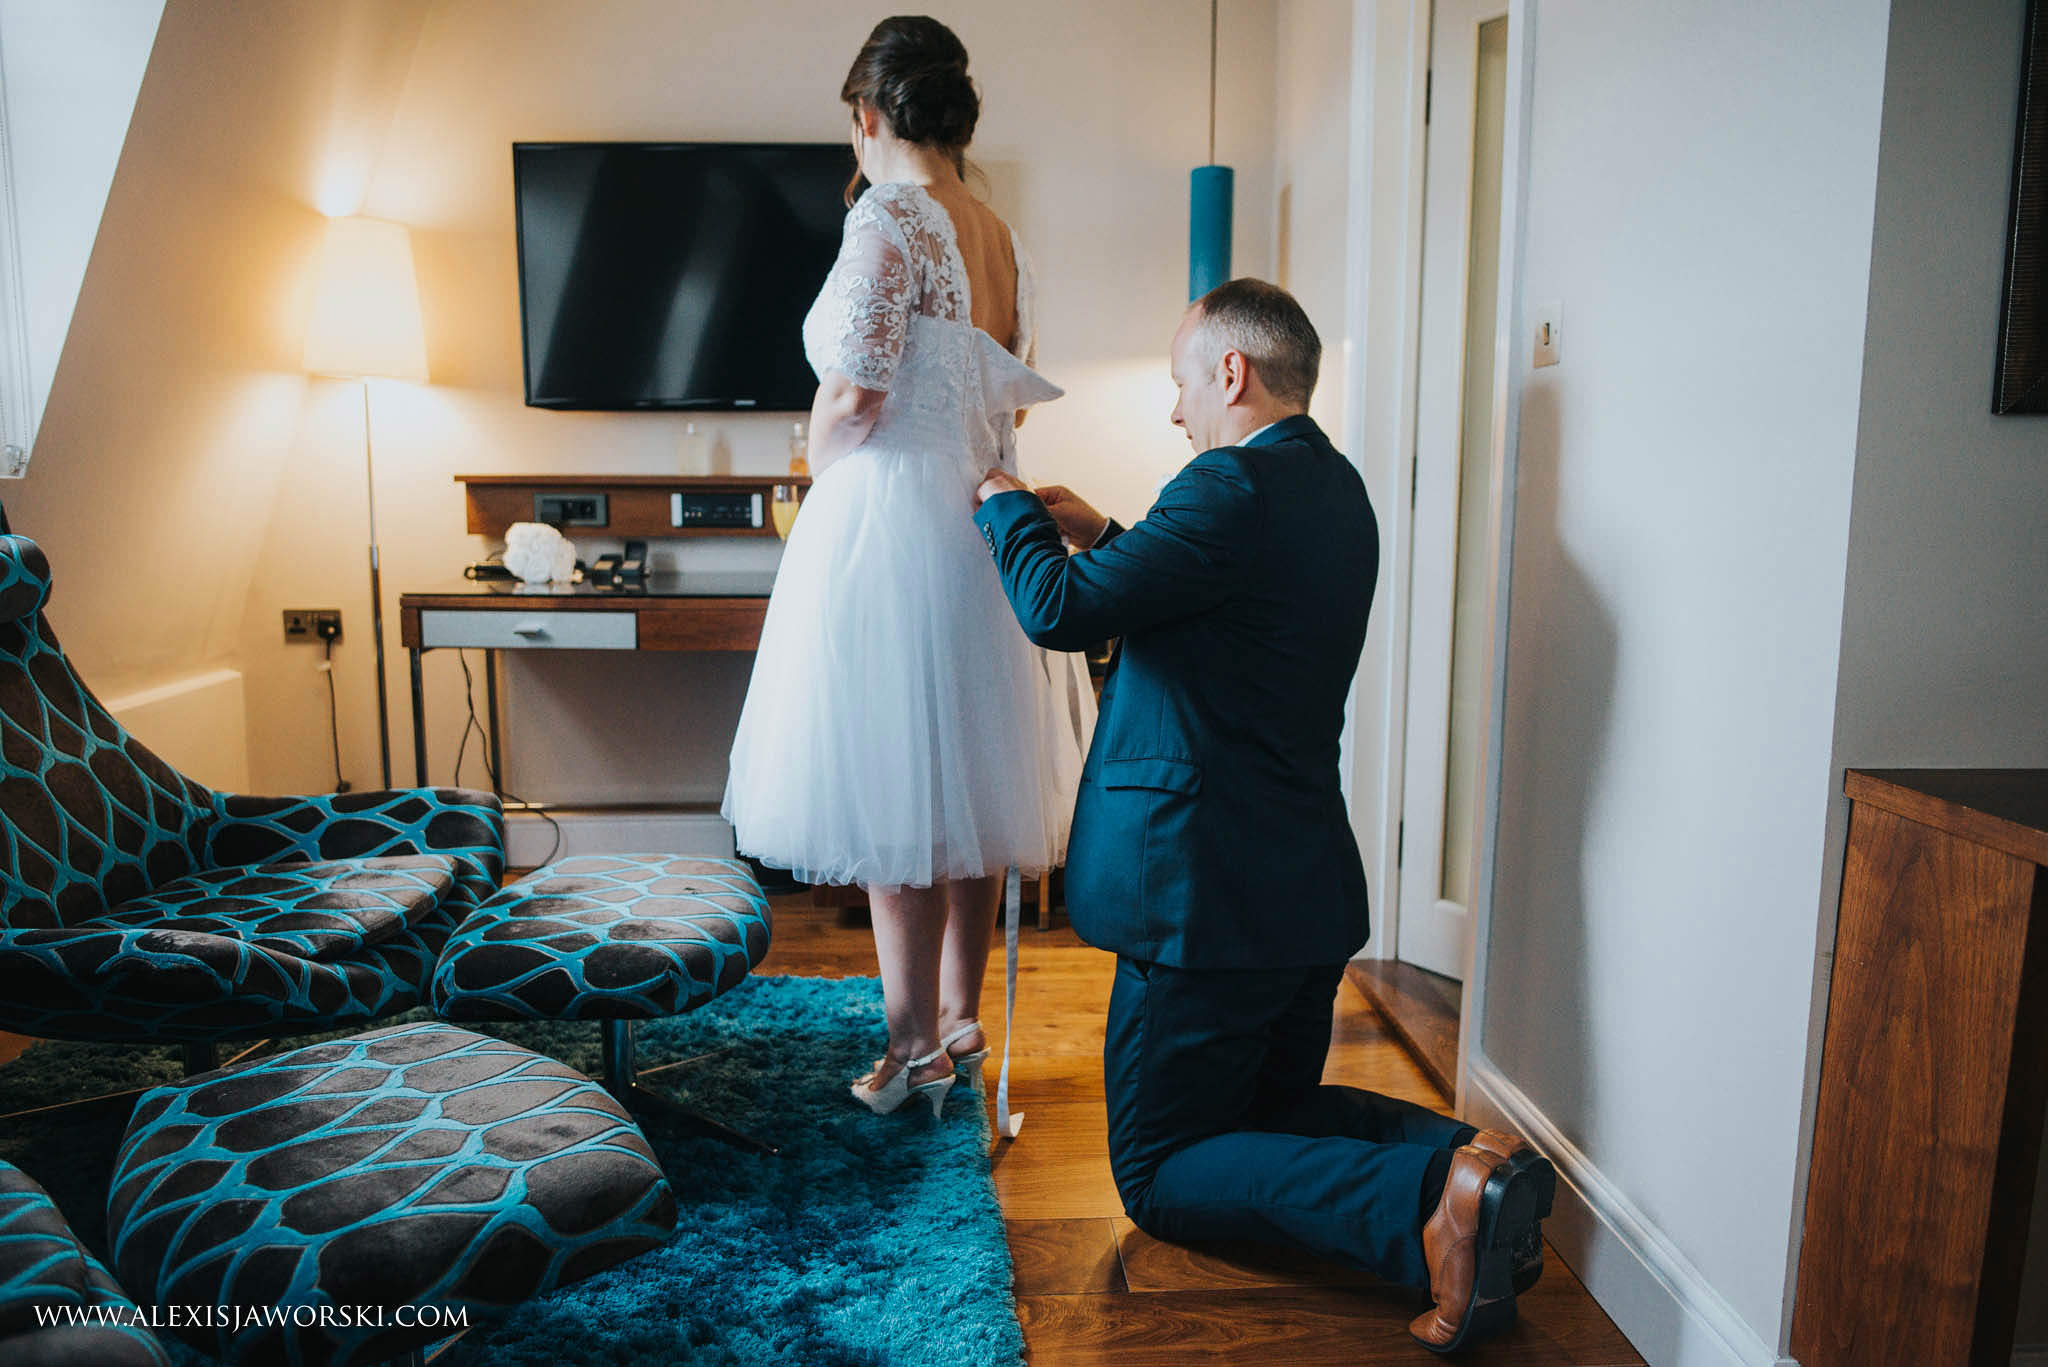 Groom helping bride putting the dress on